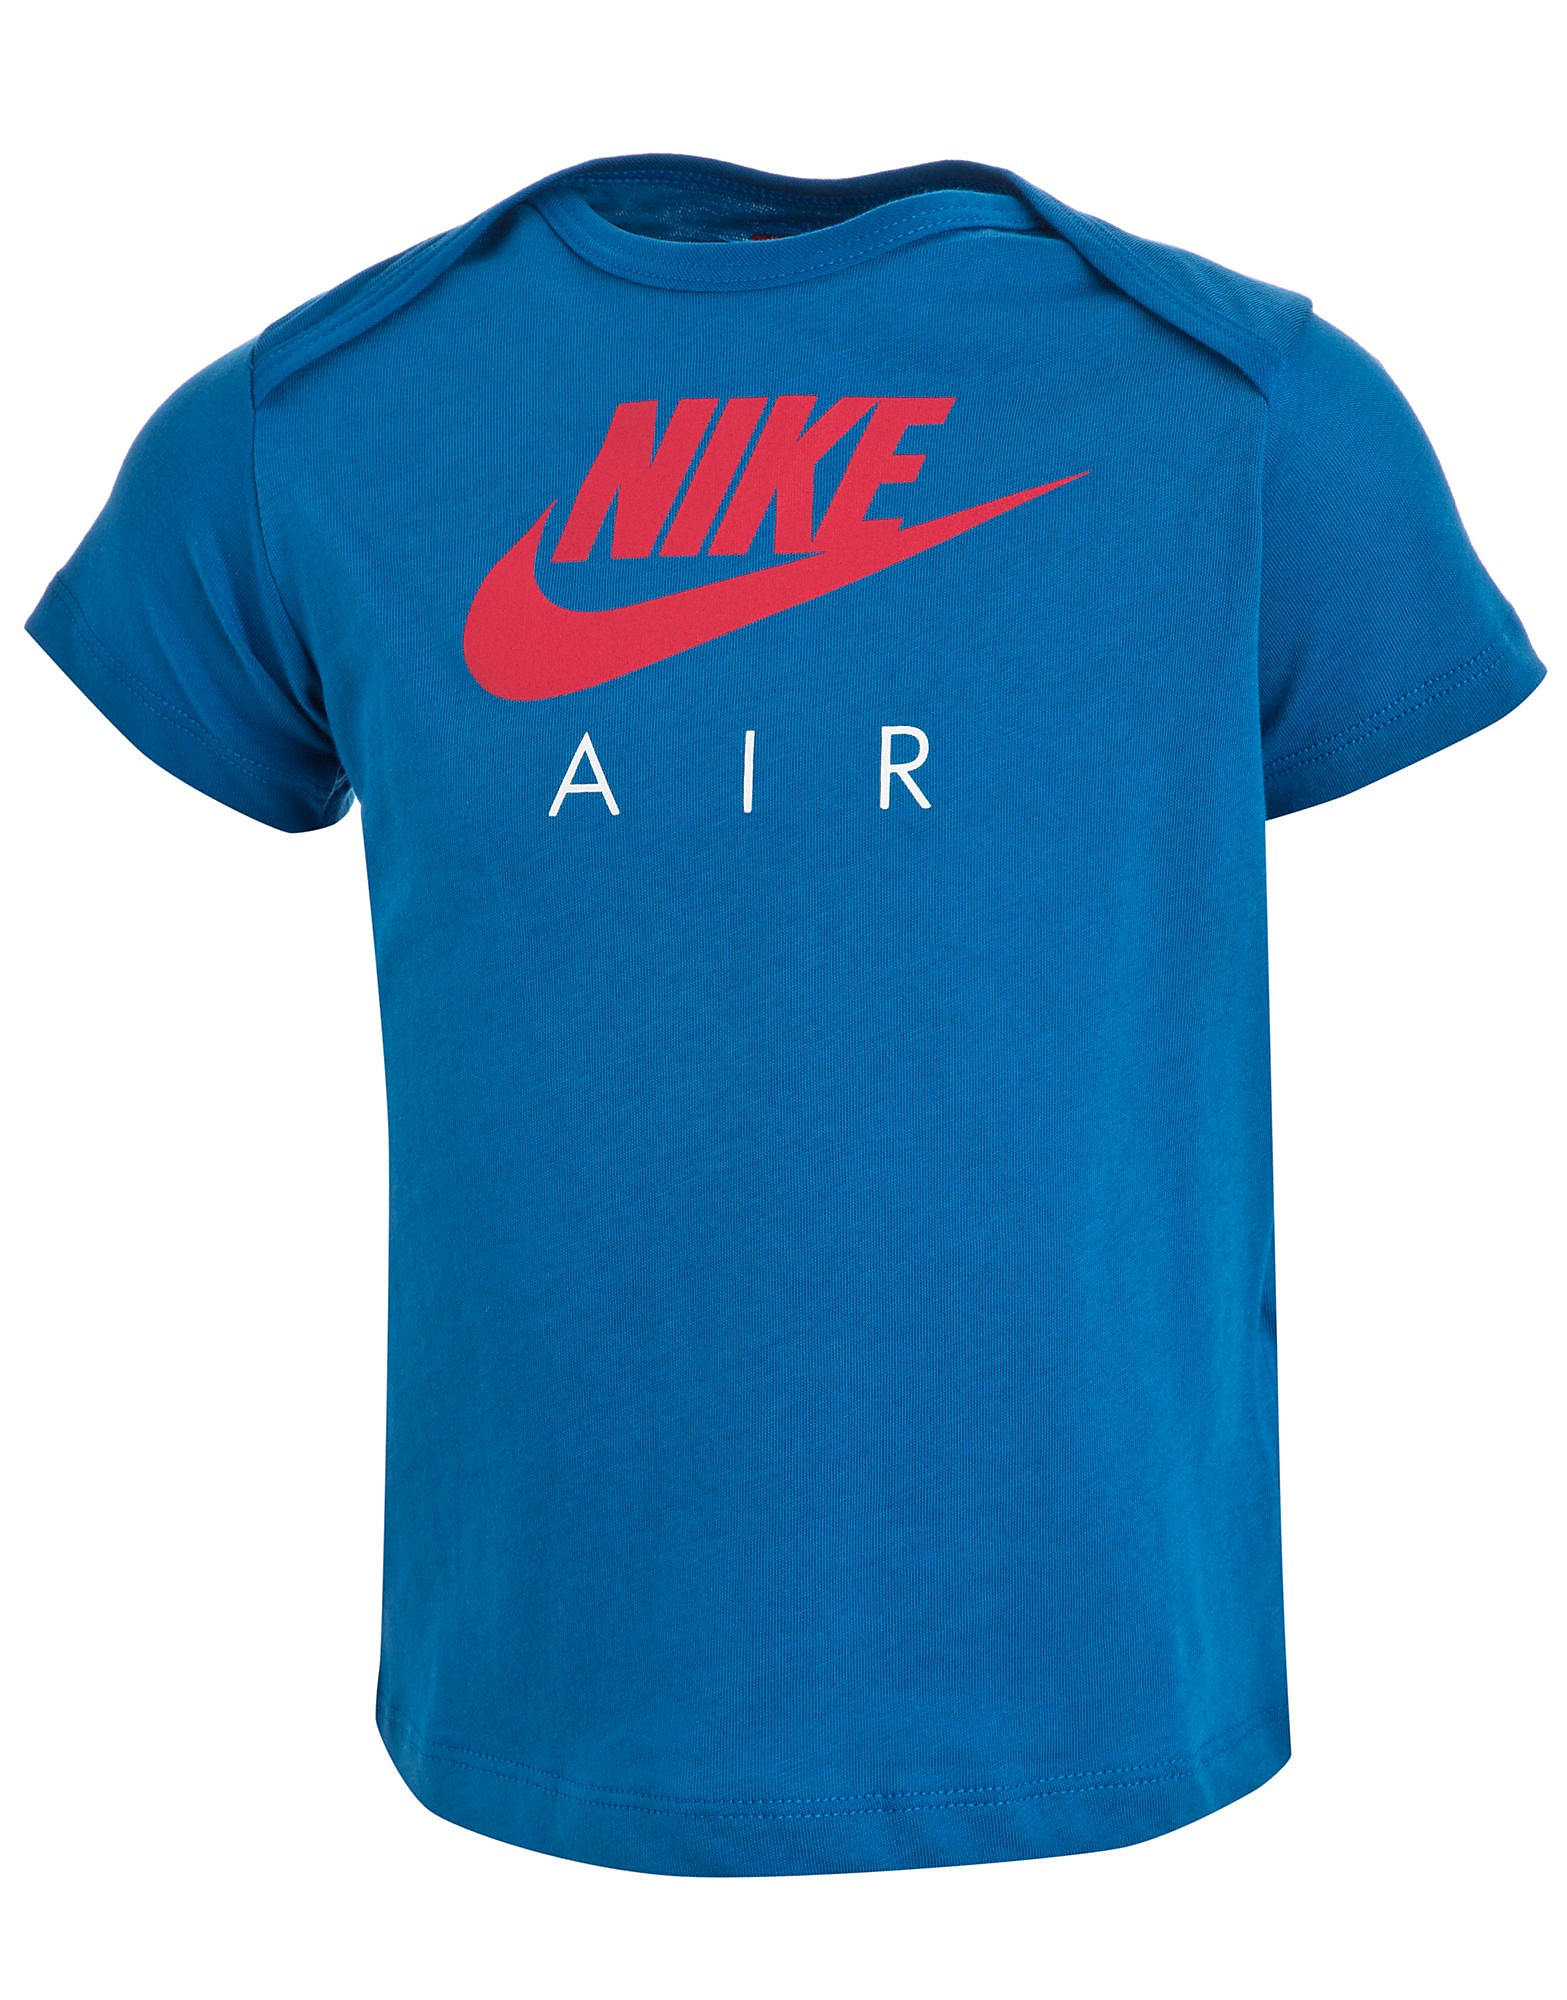 Nike Air T-Shirt Infants product image